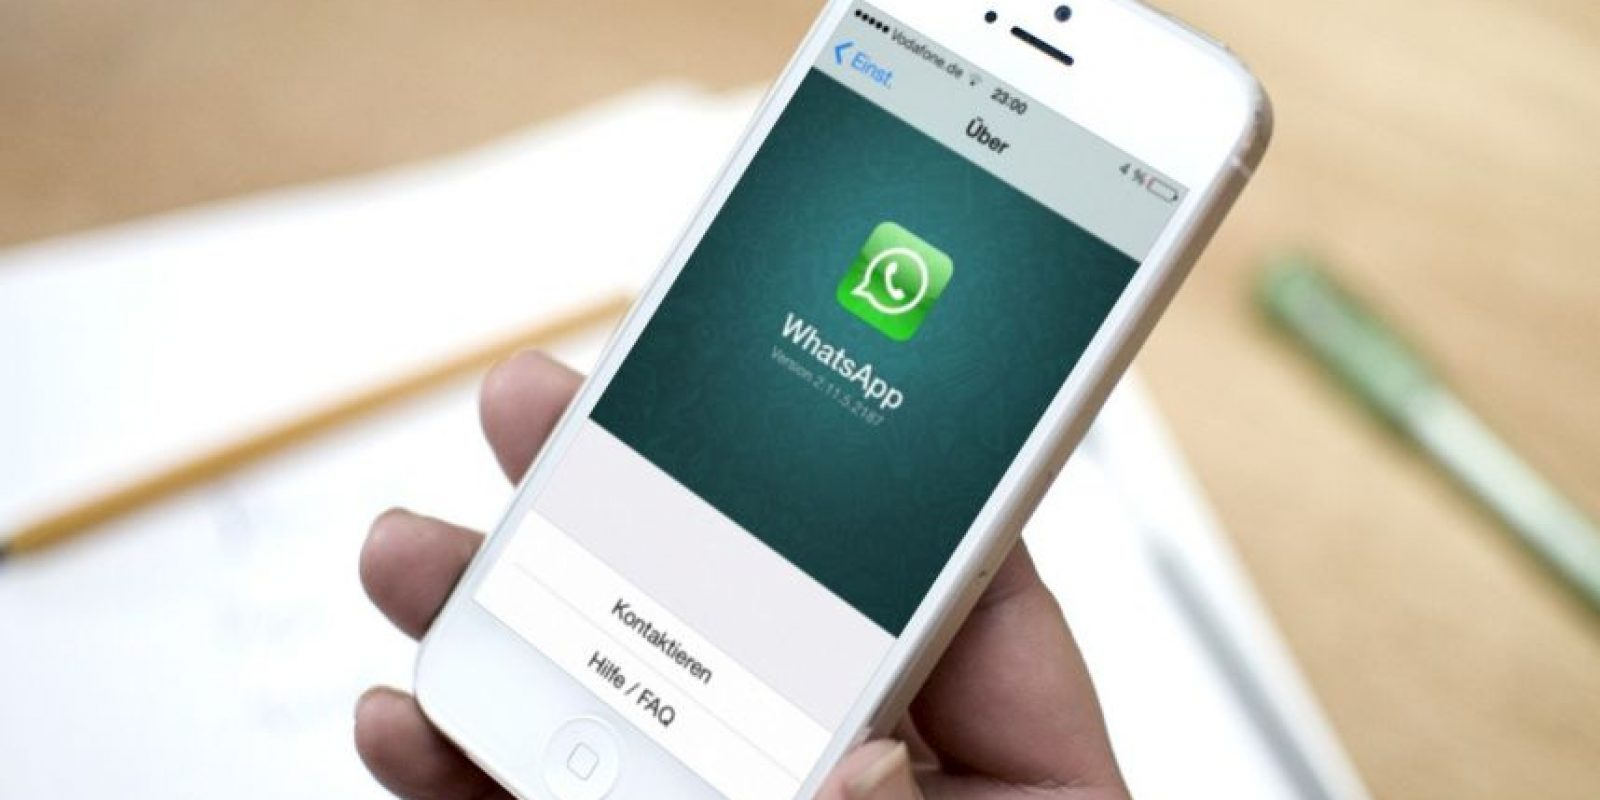 Podrán intercambiar documentos a través de WhatsApp. Foto: vía Tumblr.com